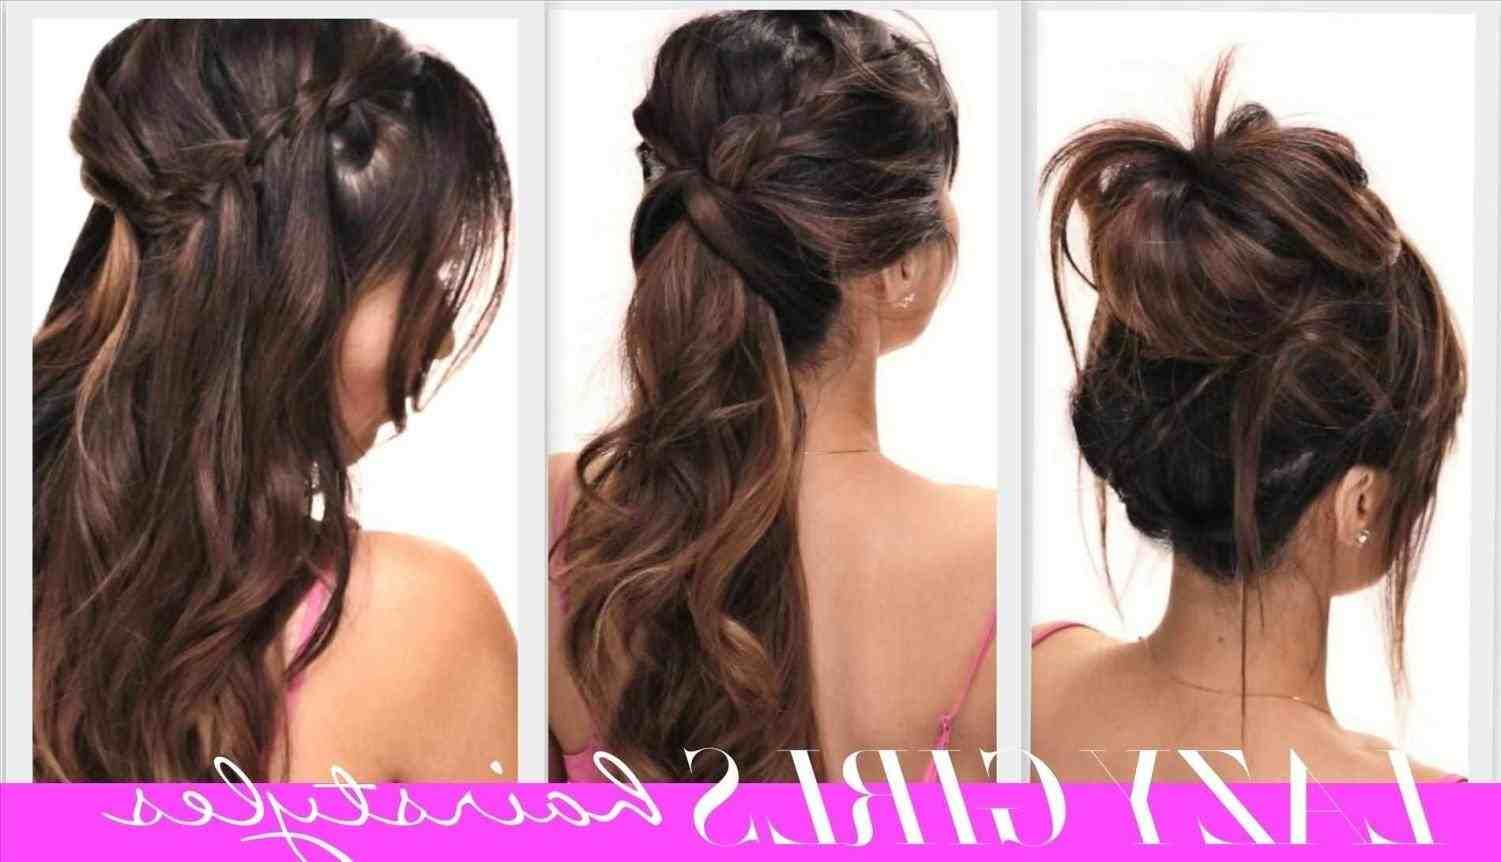 New Hairstyle 2017 For Girls Step By Step Hair Stylist And Models